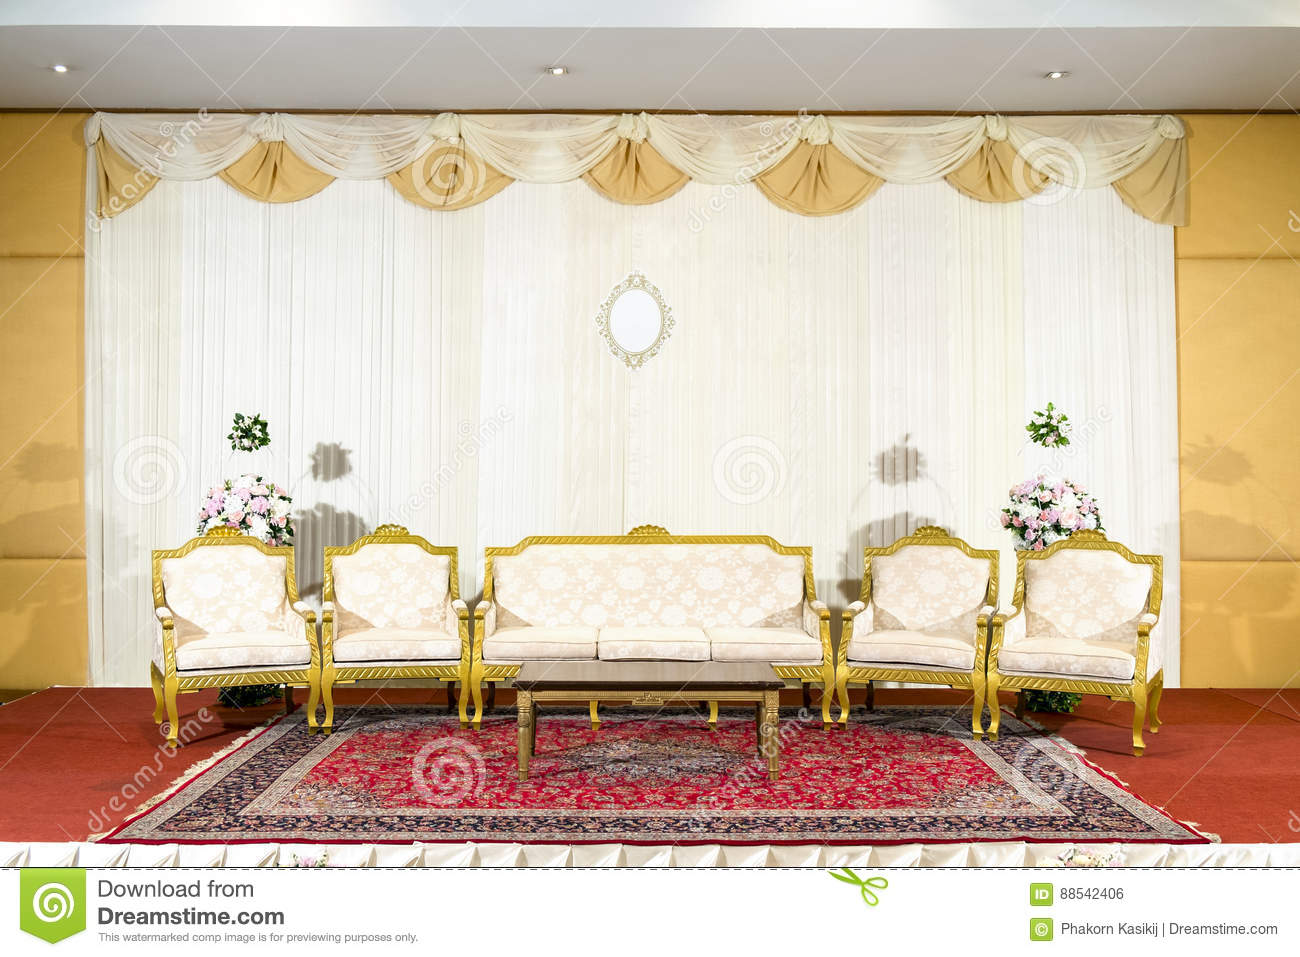 Luxury Wedding Indoor: Asian Indoor Luxurious Wedding Decoration Stage Stock